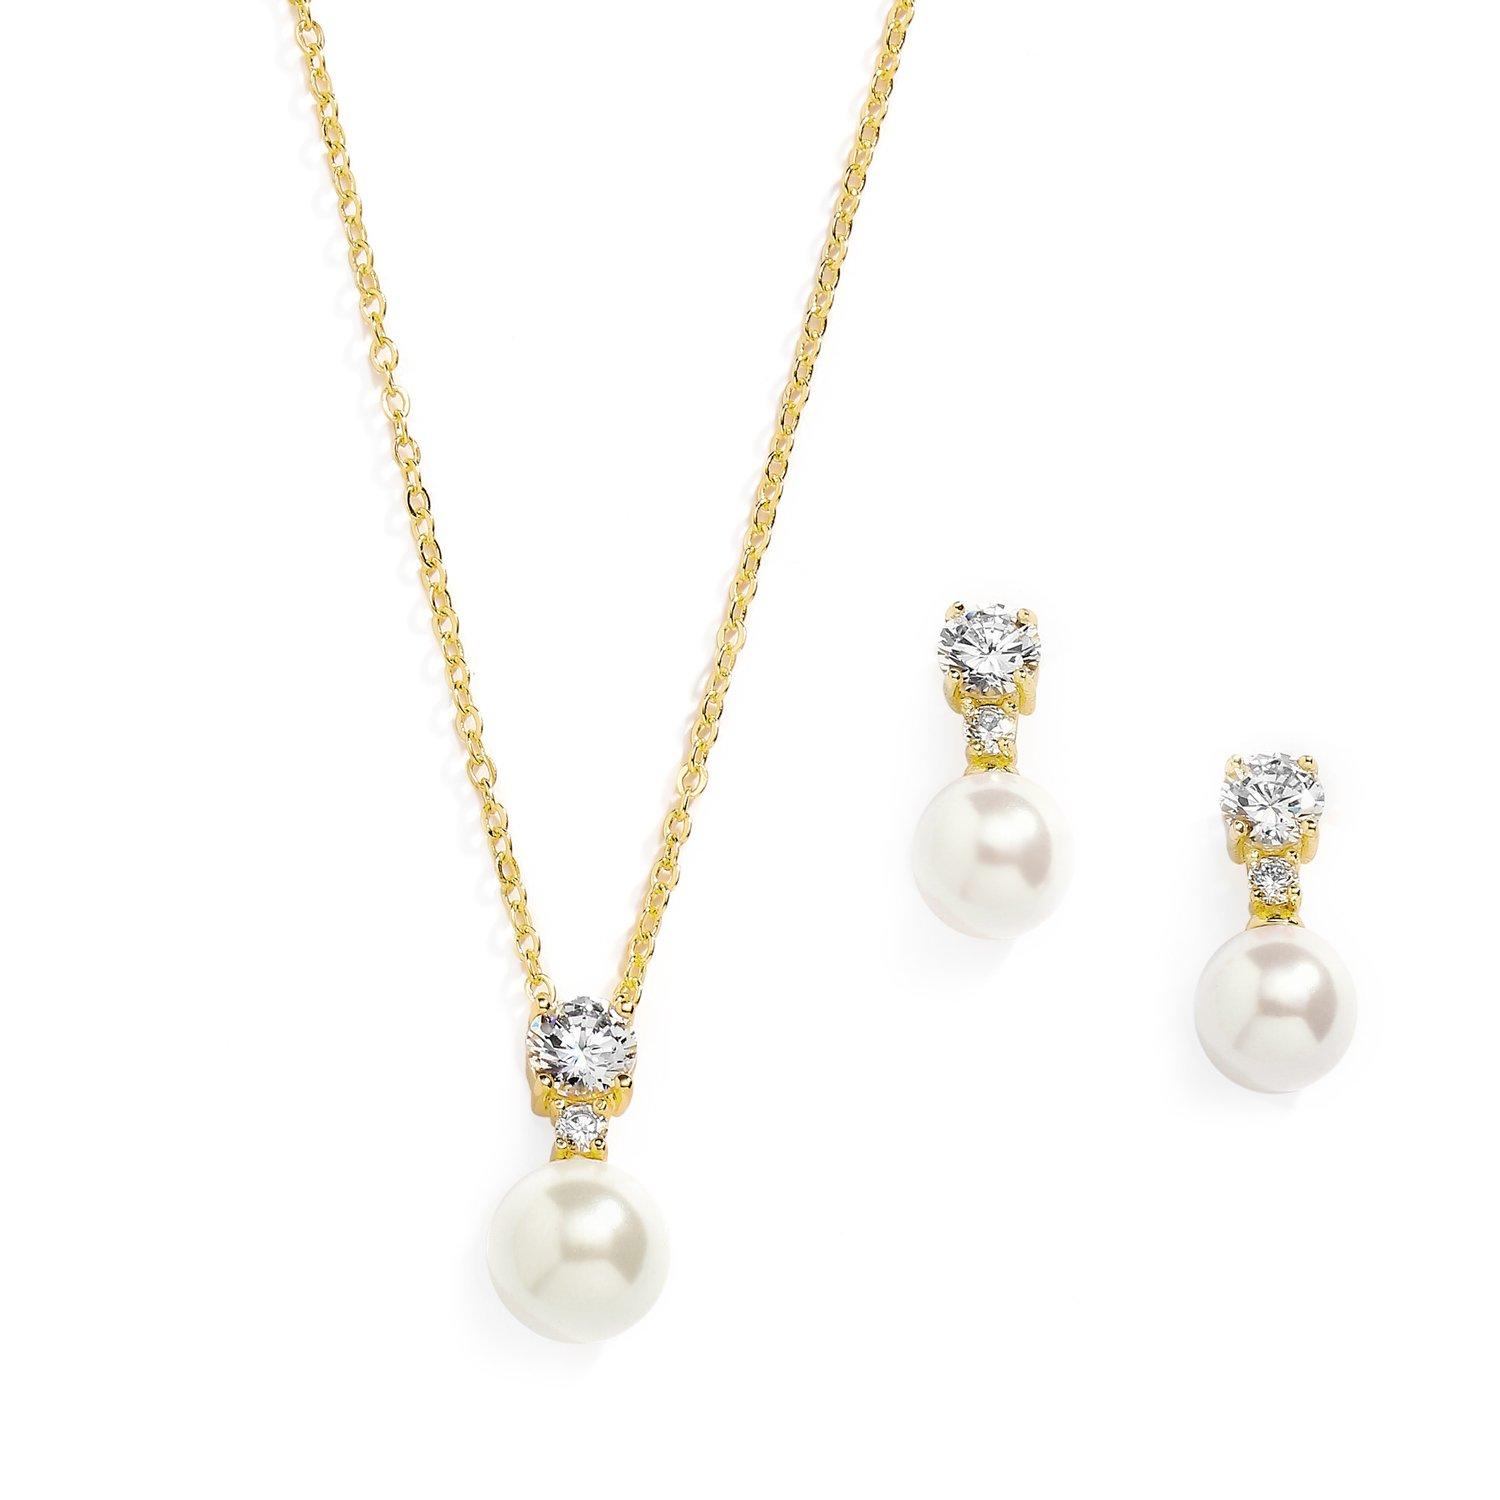 Mariell Gold CZ & Ivory Pearl Wedding Necklace and Earrings Jewelry Set for Bridesmaids & Brides by Mariell